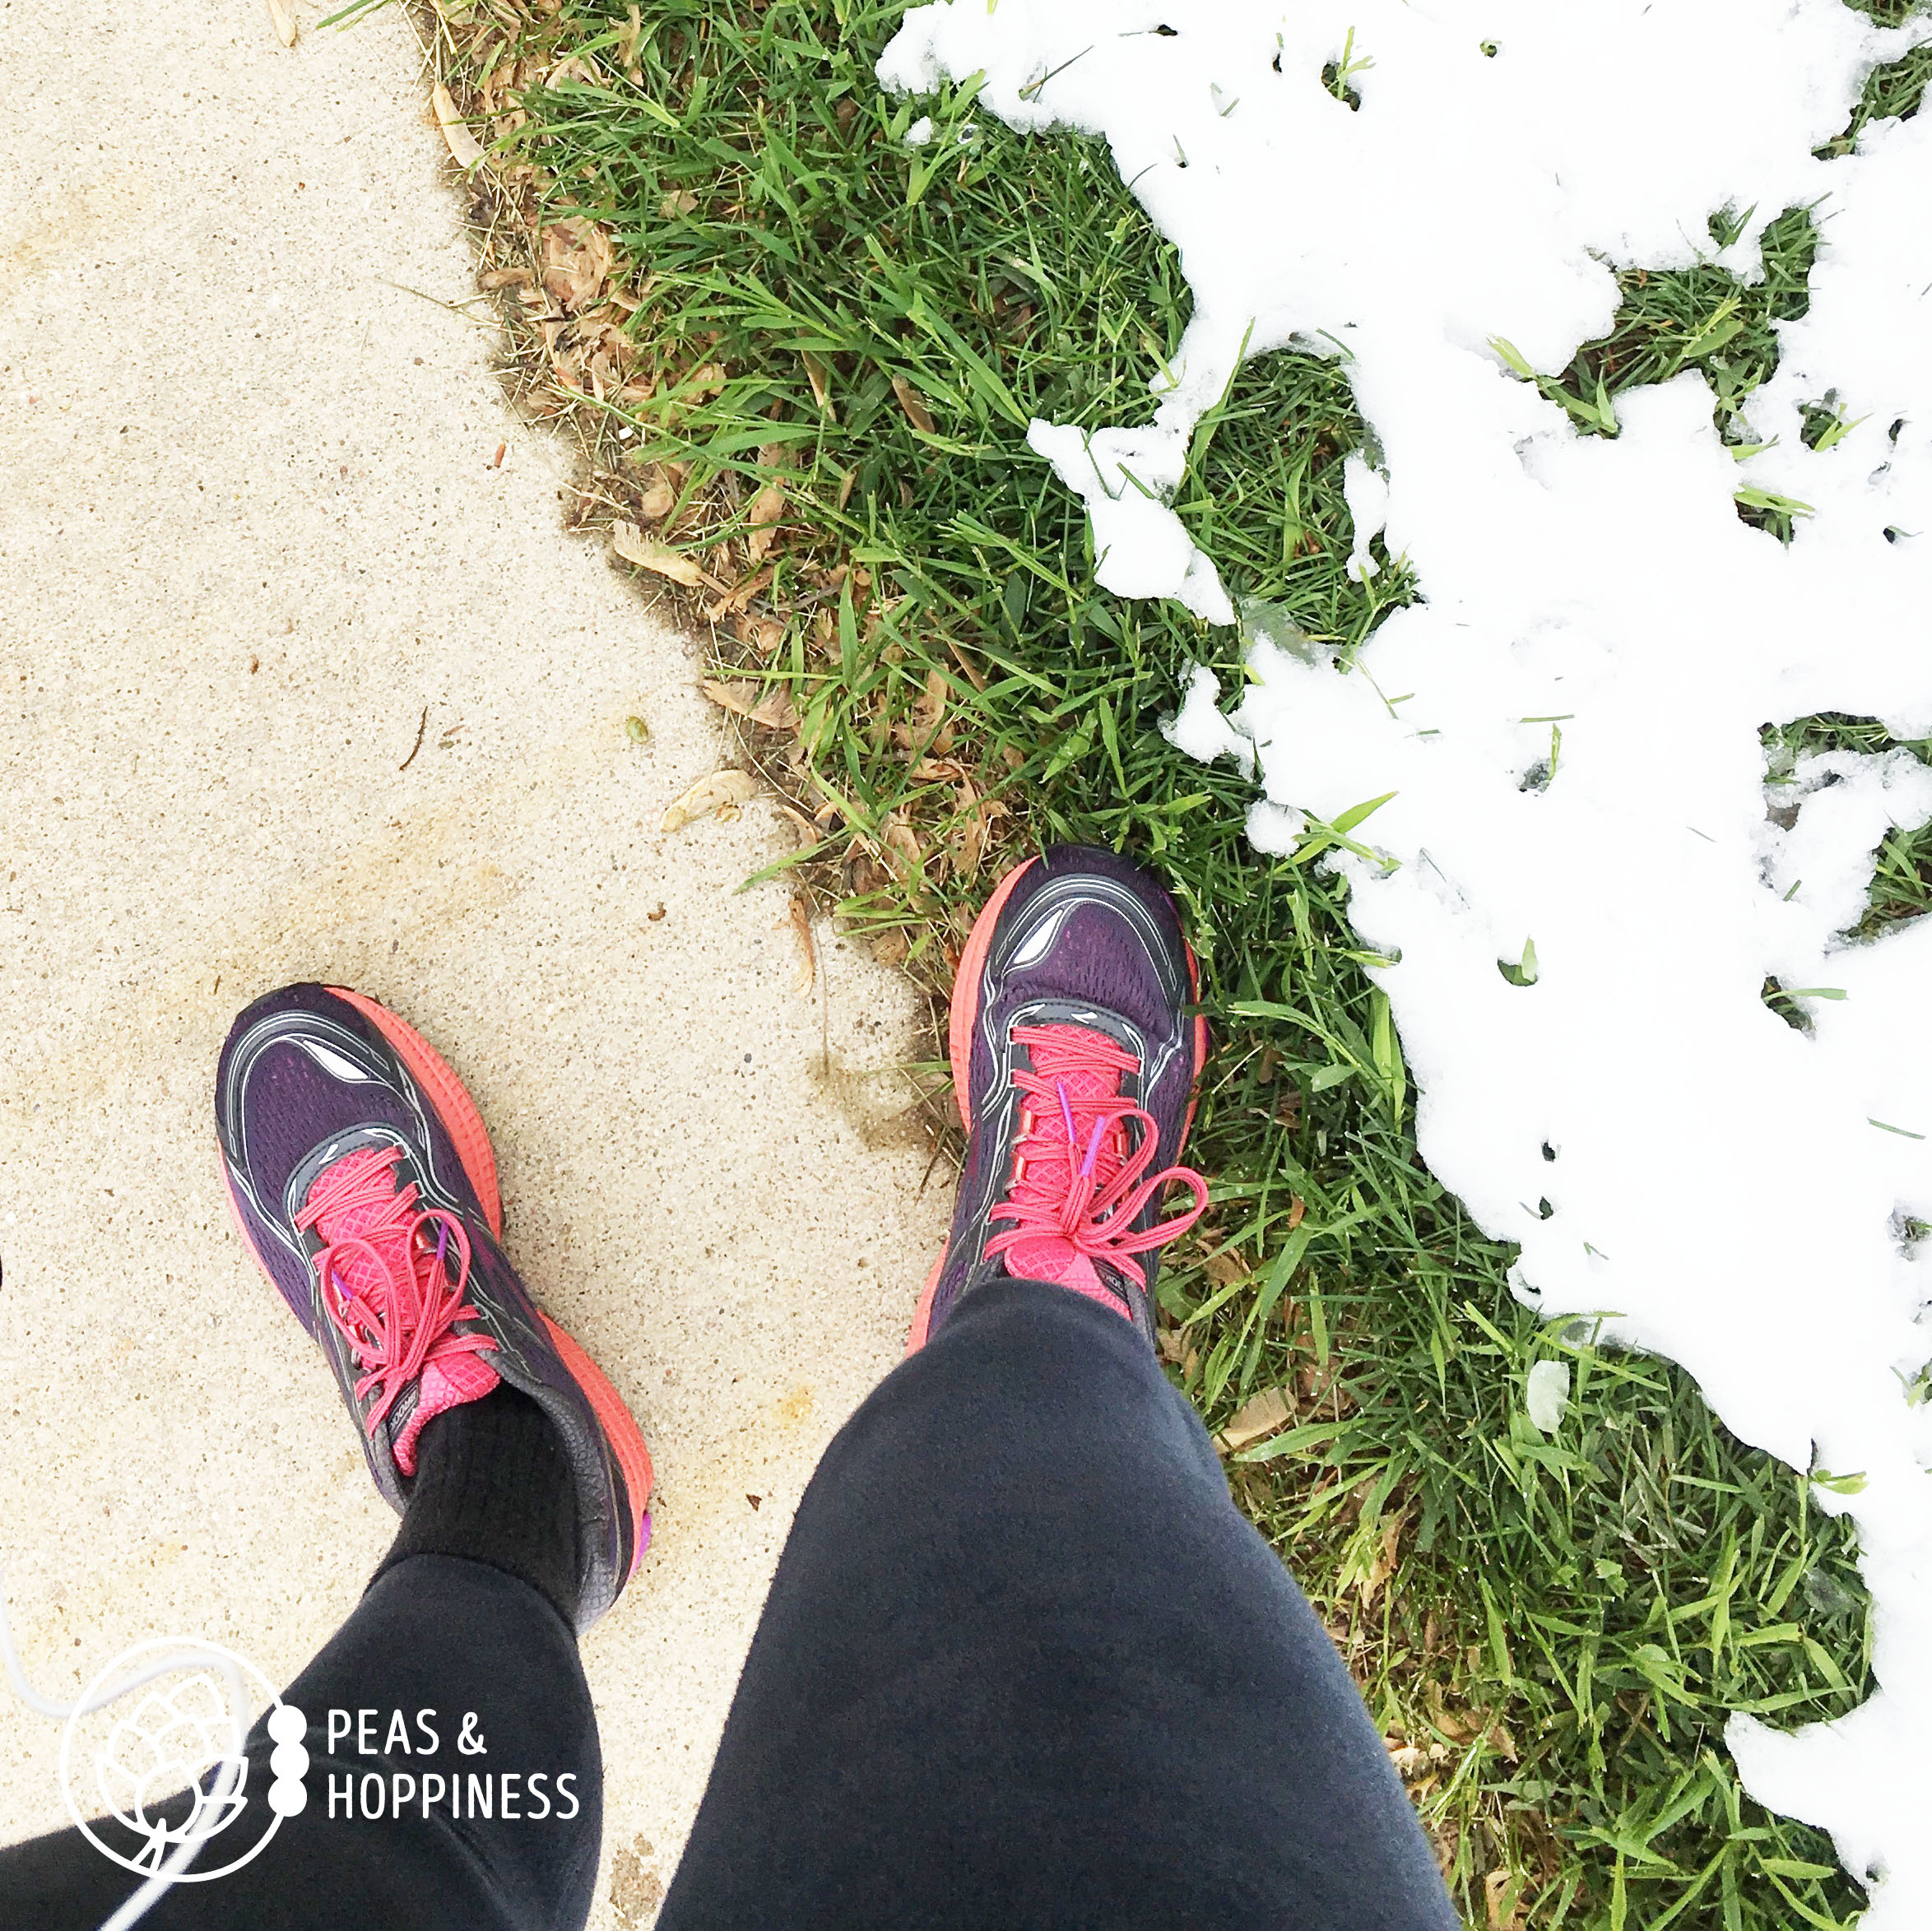 If I used snow as an excuse, I'd never go running...